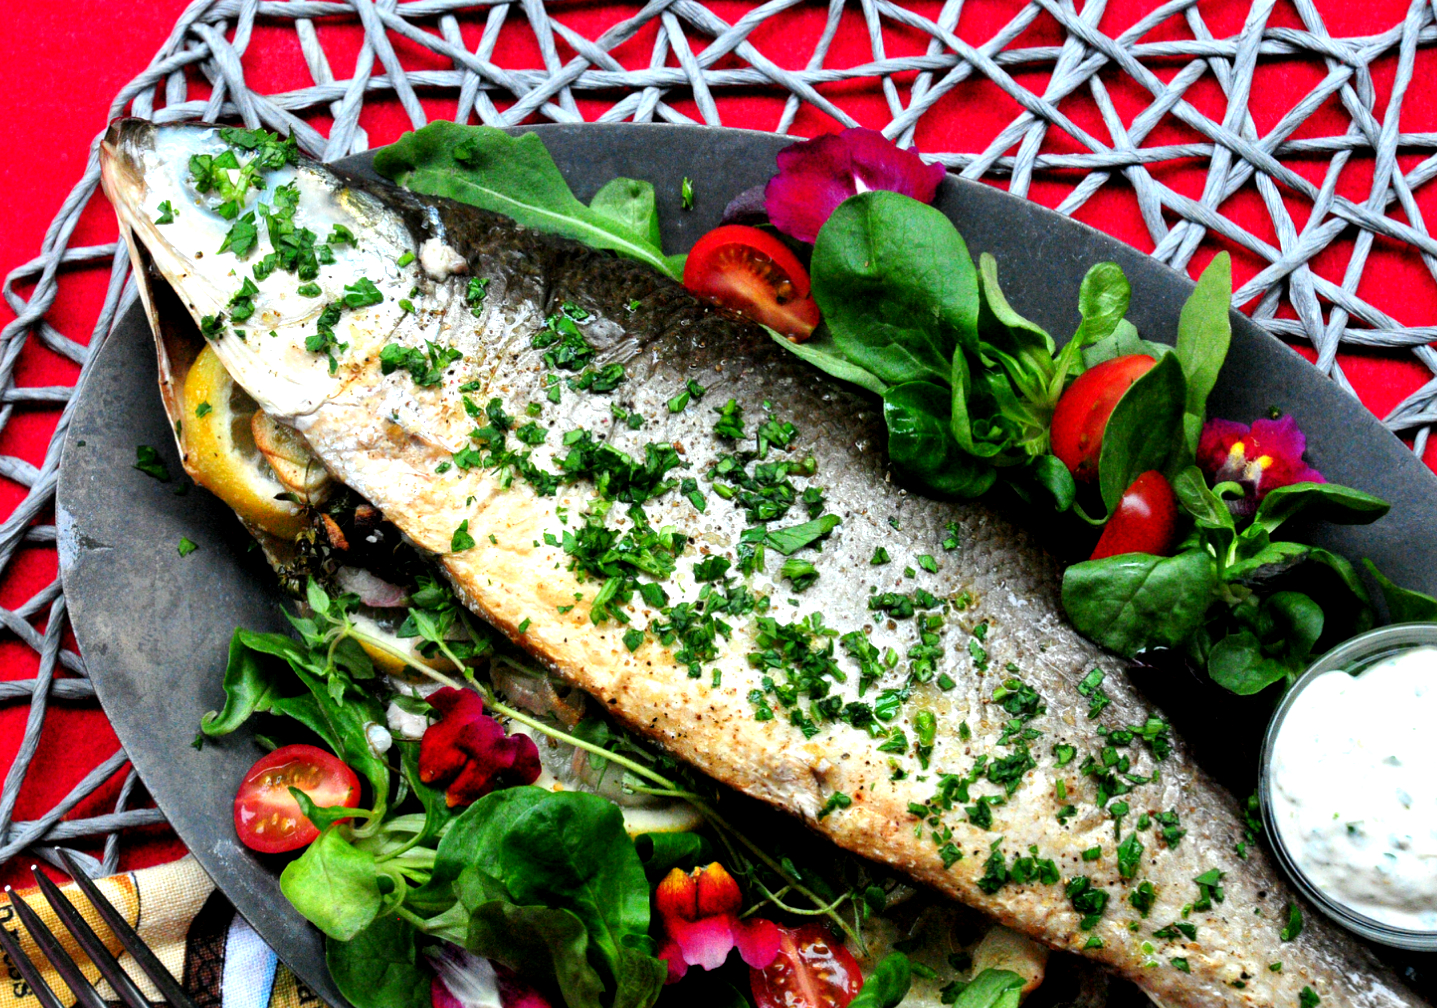 Grilled Fish With Citrus Herb Crust Recipes — Dishmaps